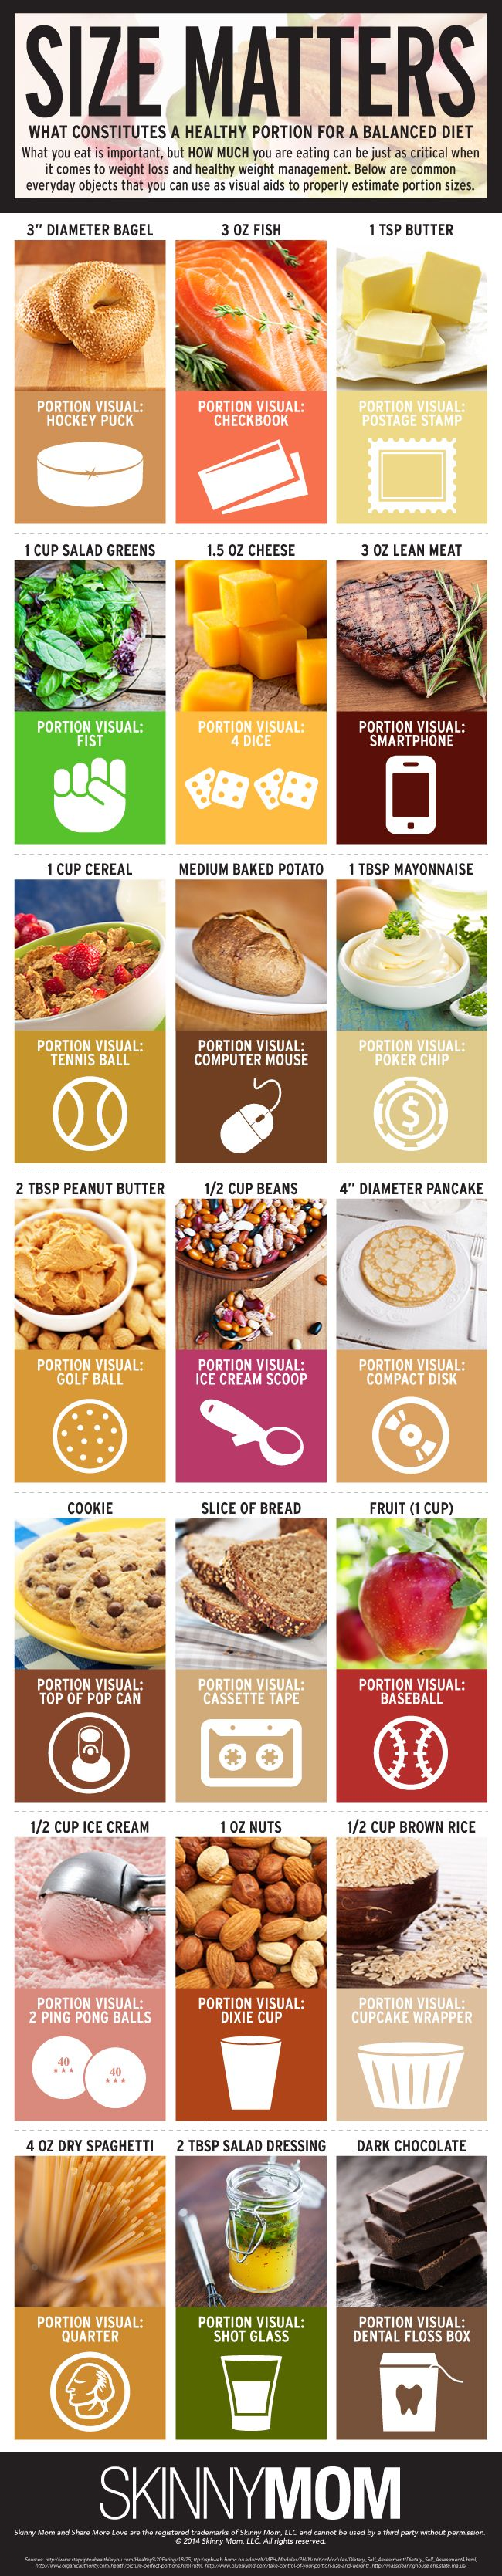 Helpful Tips for Appropriate Portion Sizes | Skinny Mom | Where Moms Get the Skinny on #Healthy #Living